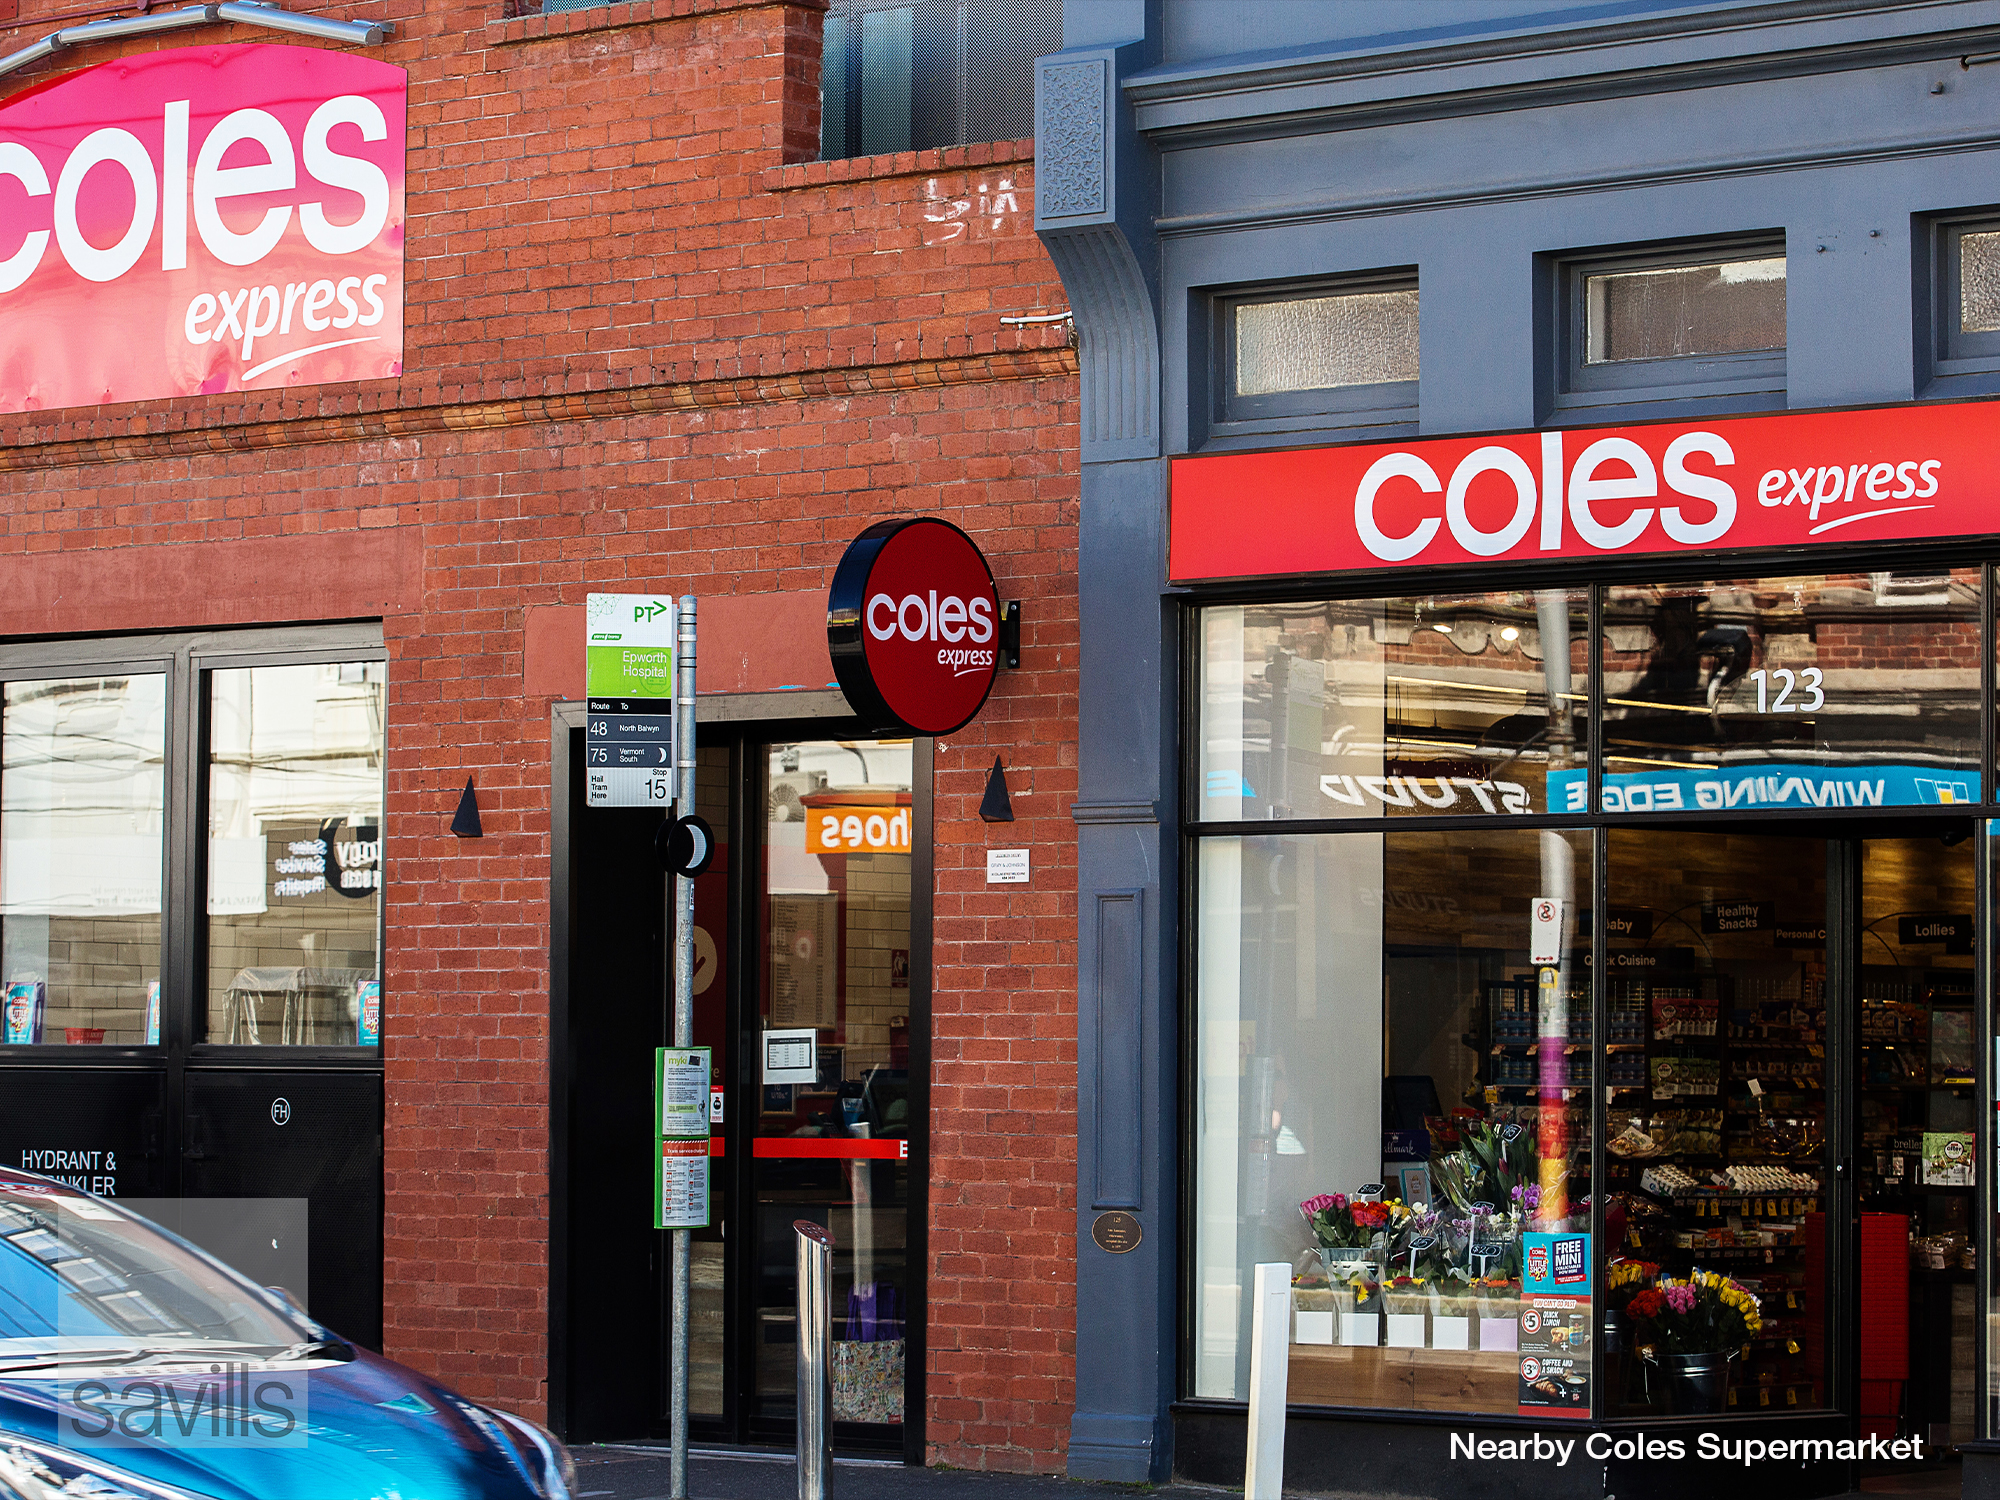 13 - Nearby Coles Supermarket.jpg